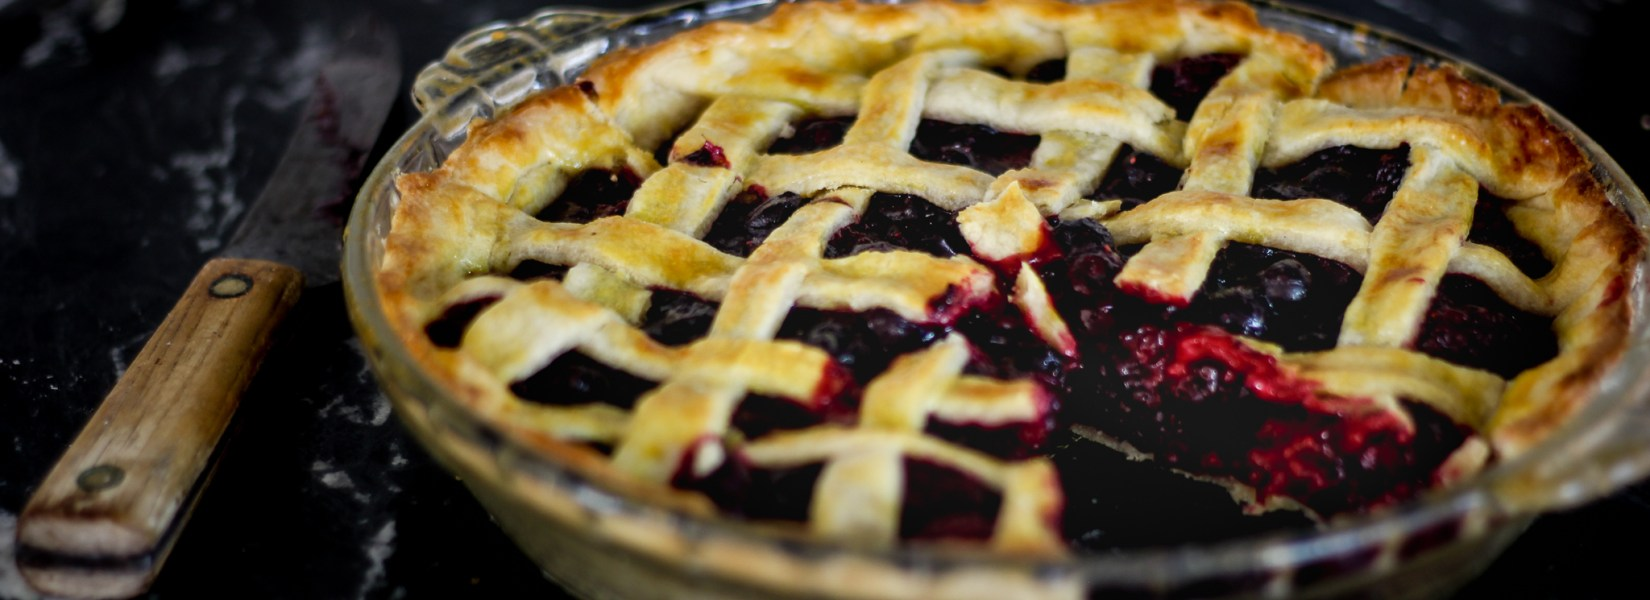 How to Make Pie From Scratch – Blackberry Edition